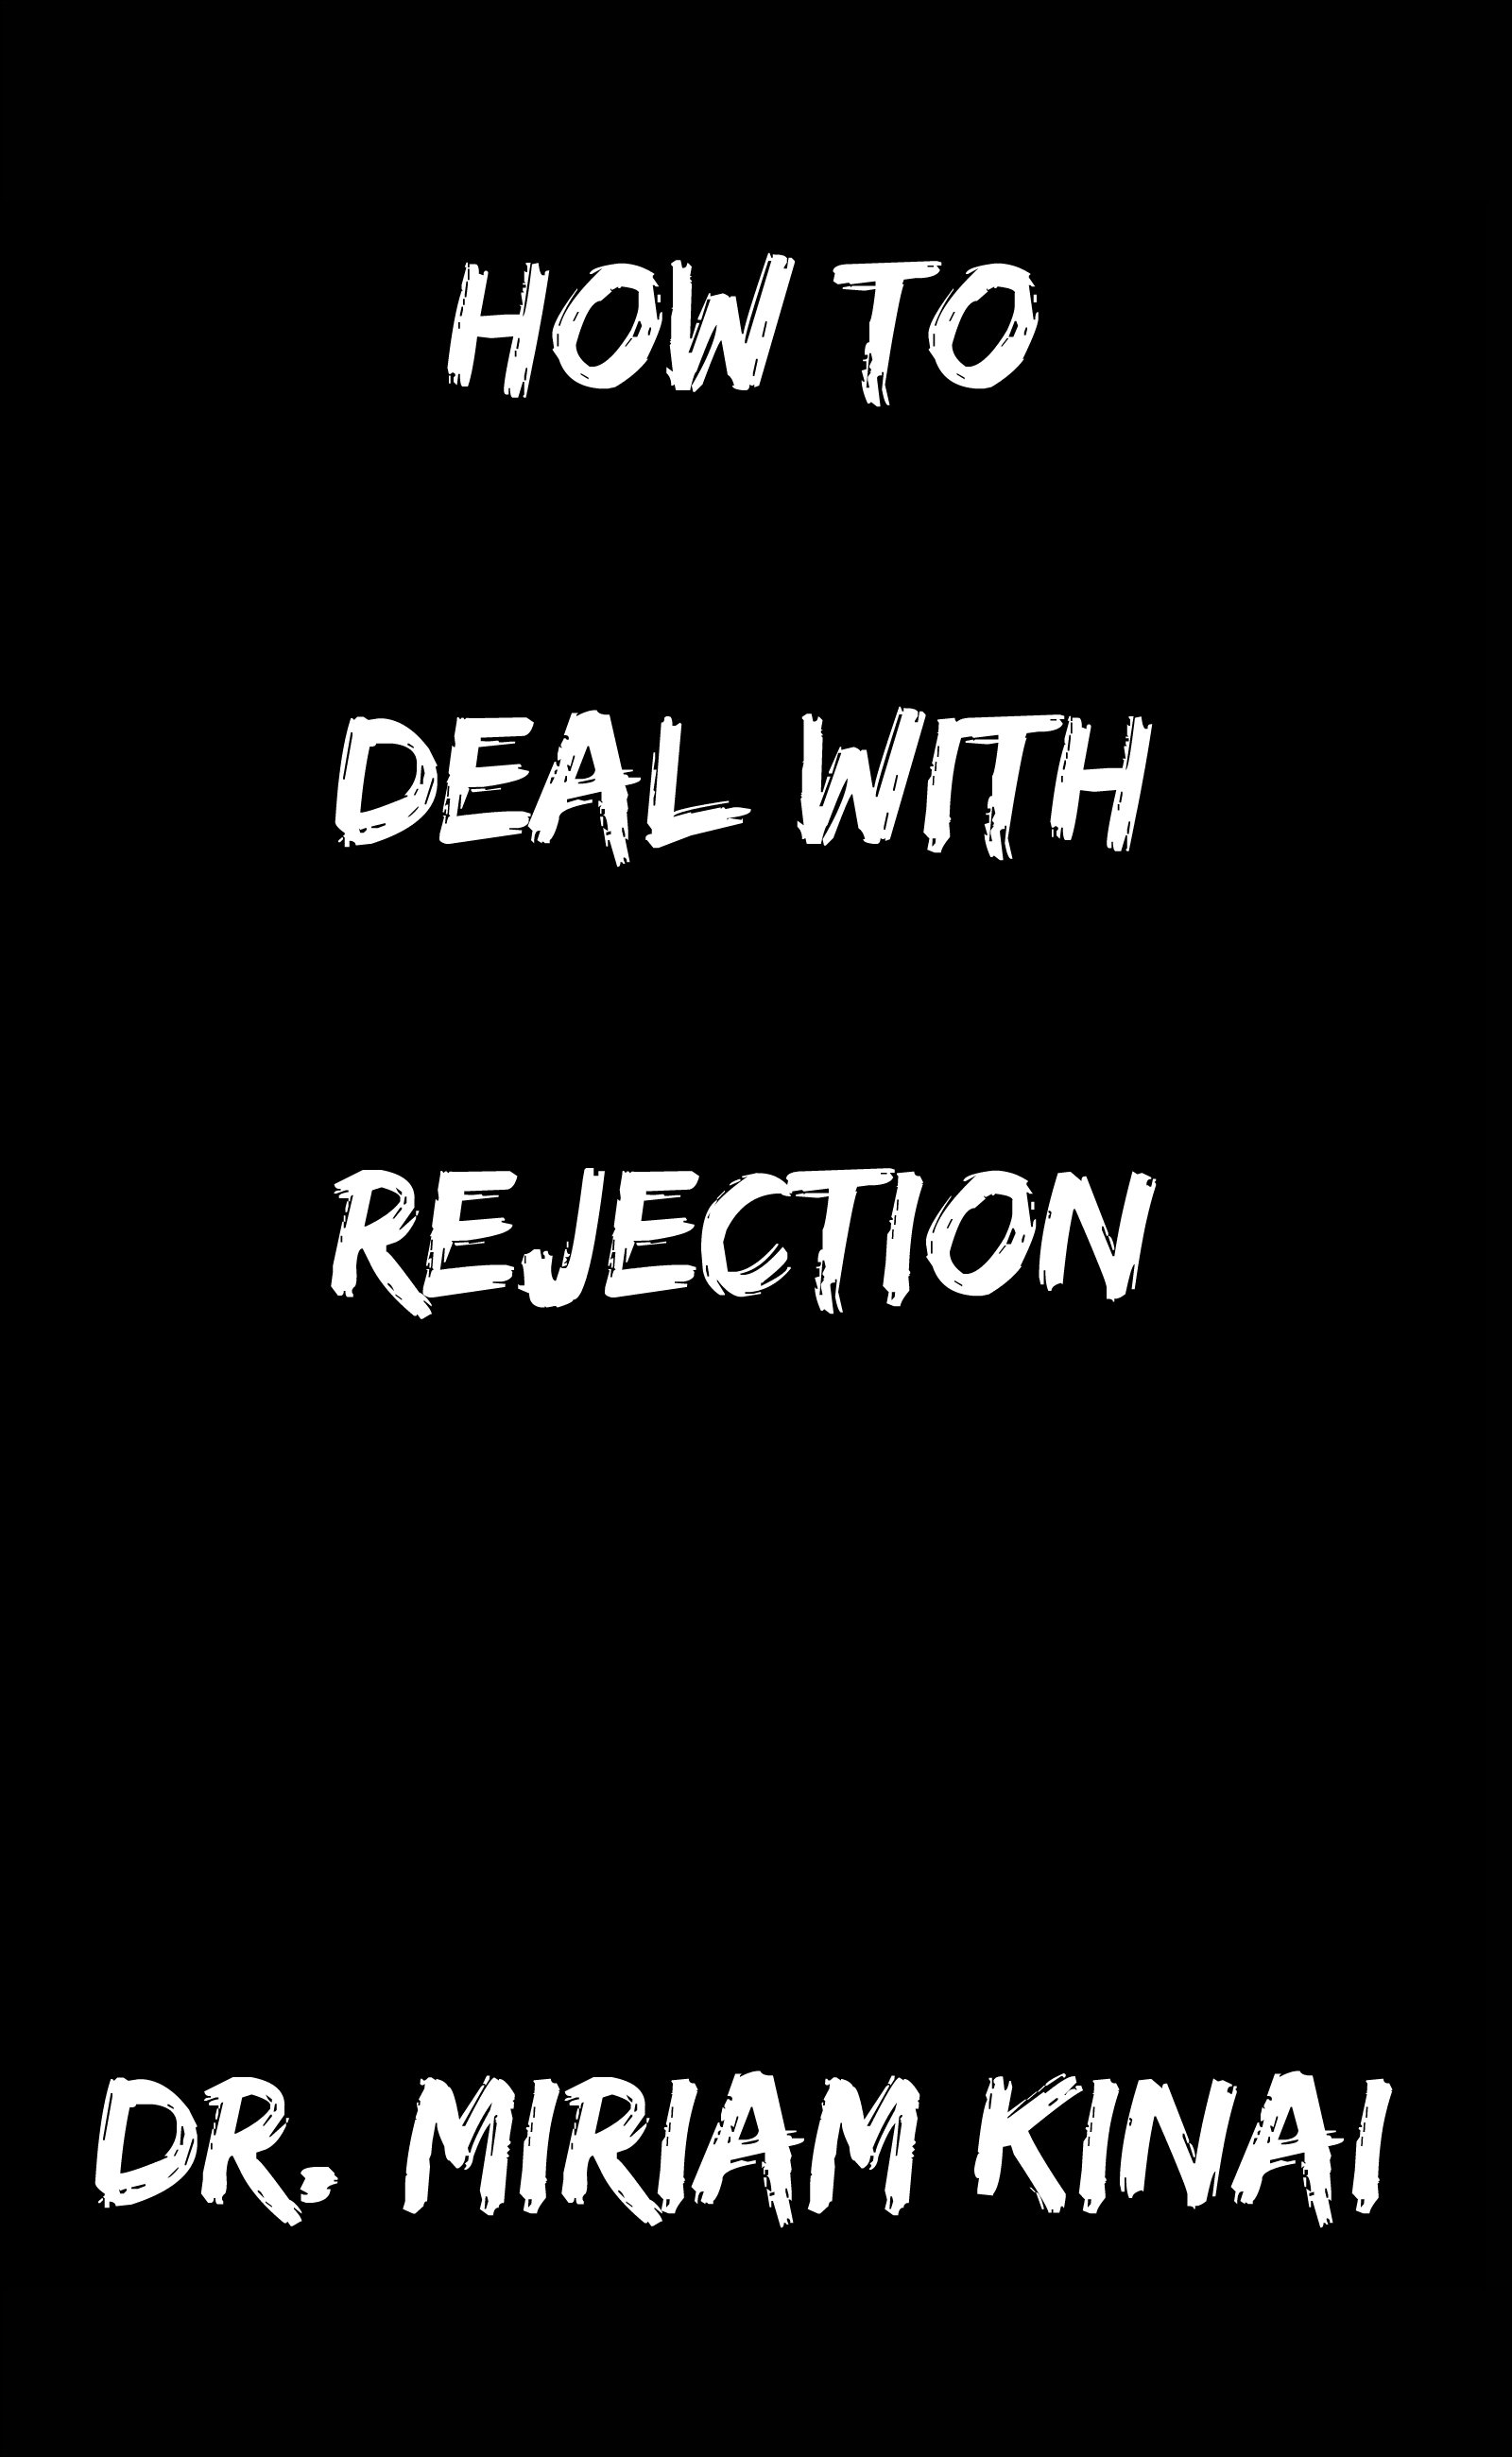 hookup how to deal with rejection